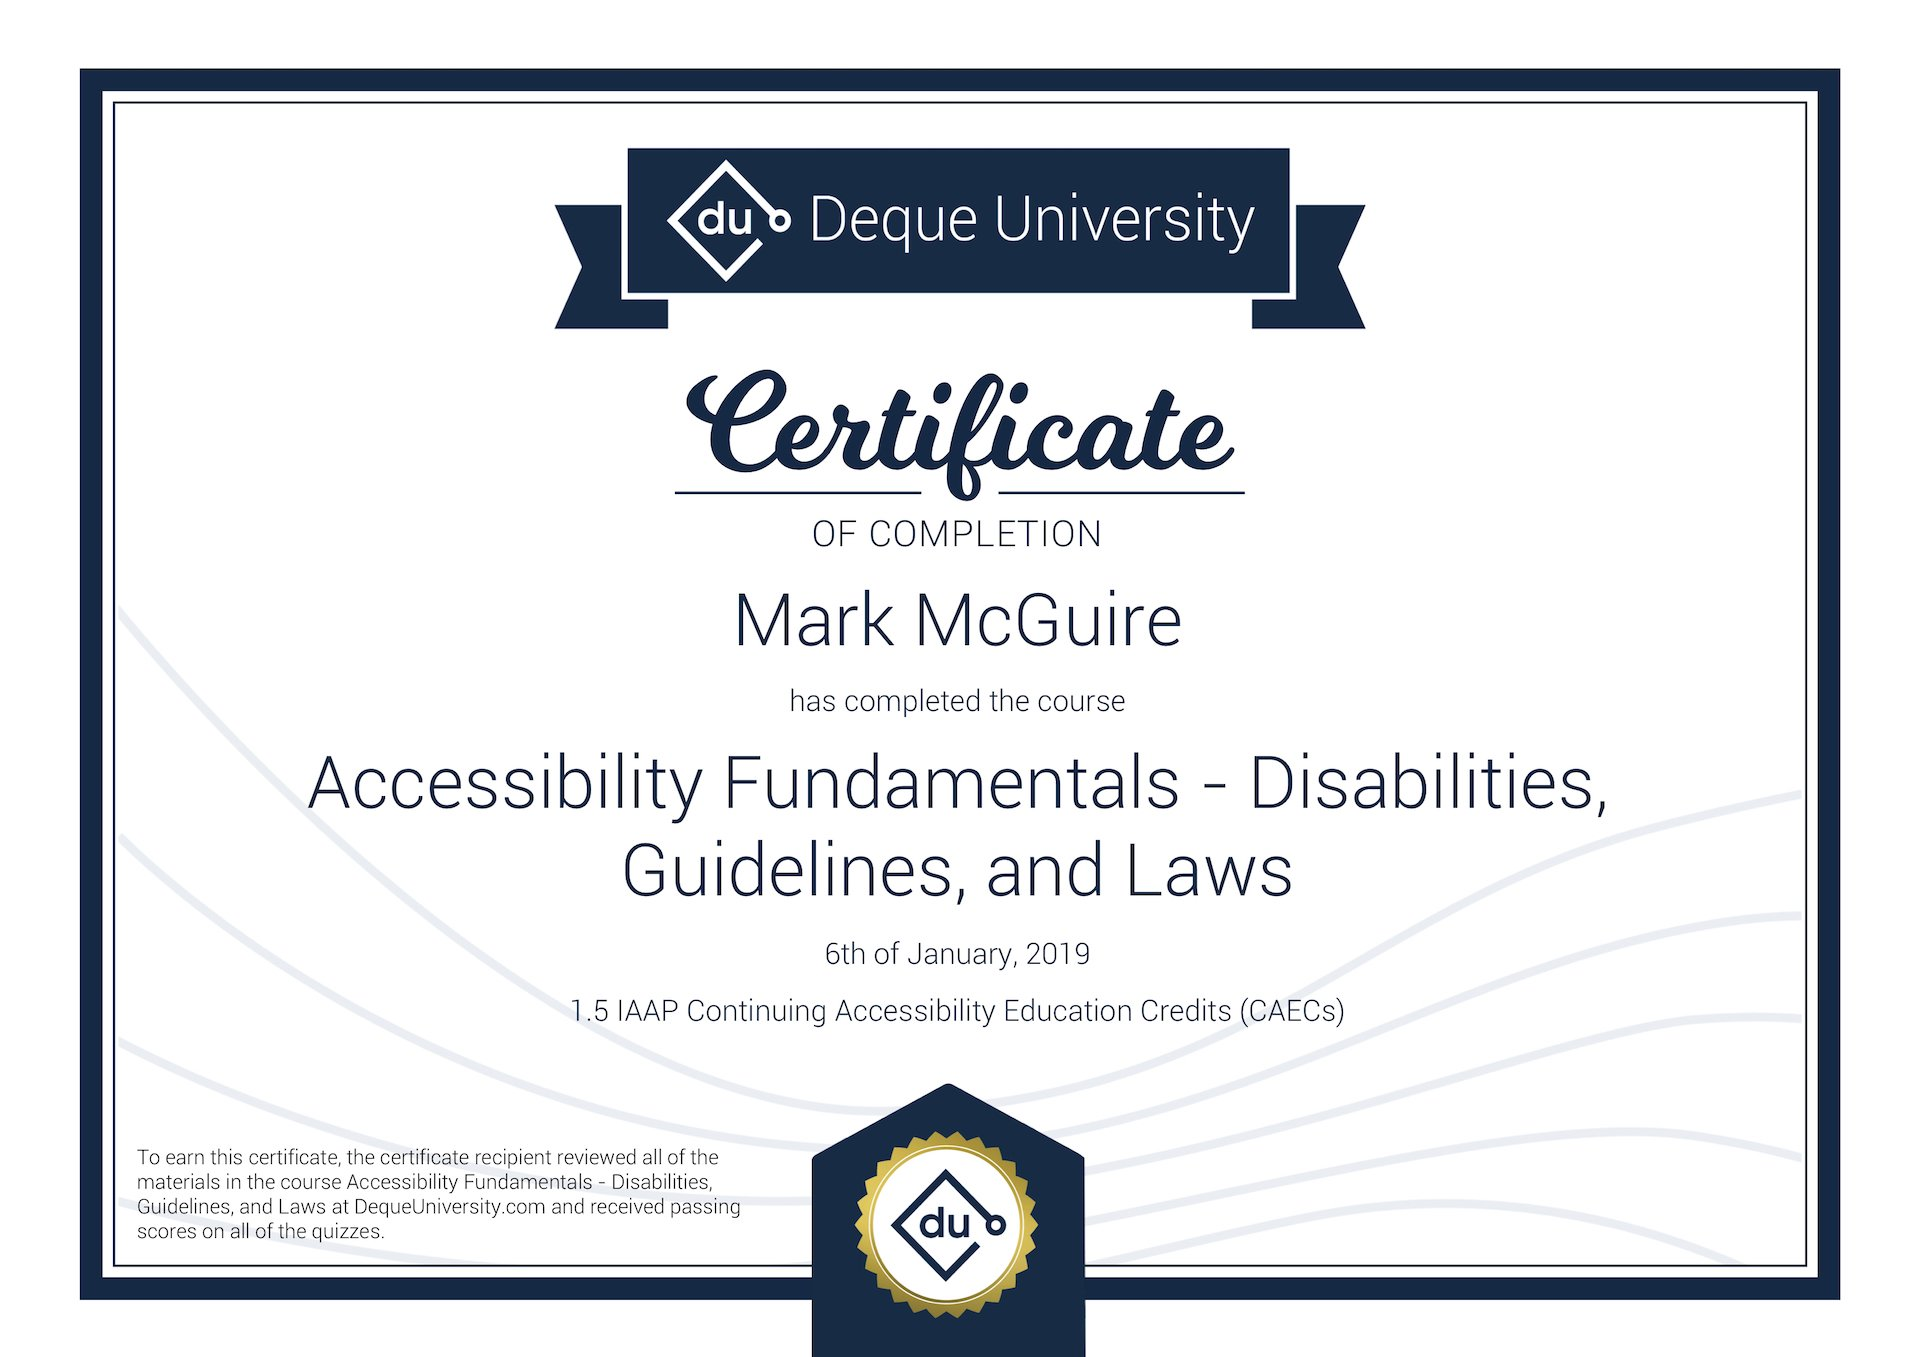 Deque University Certificate